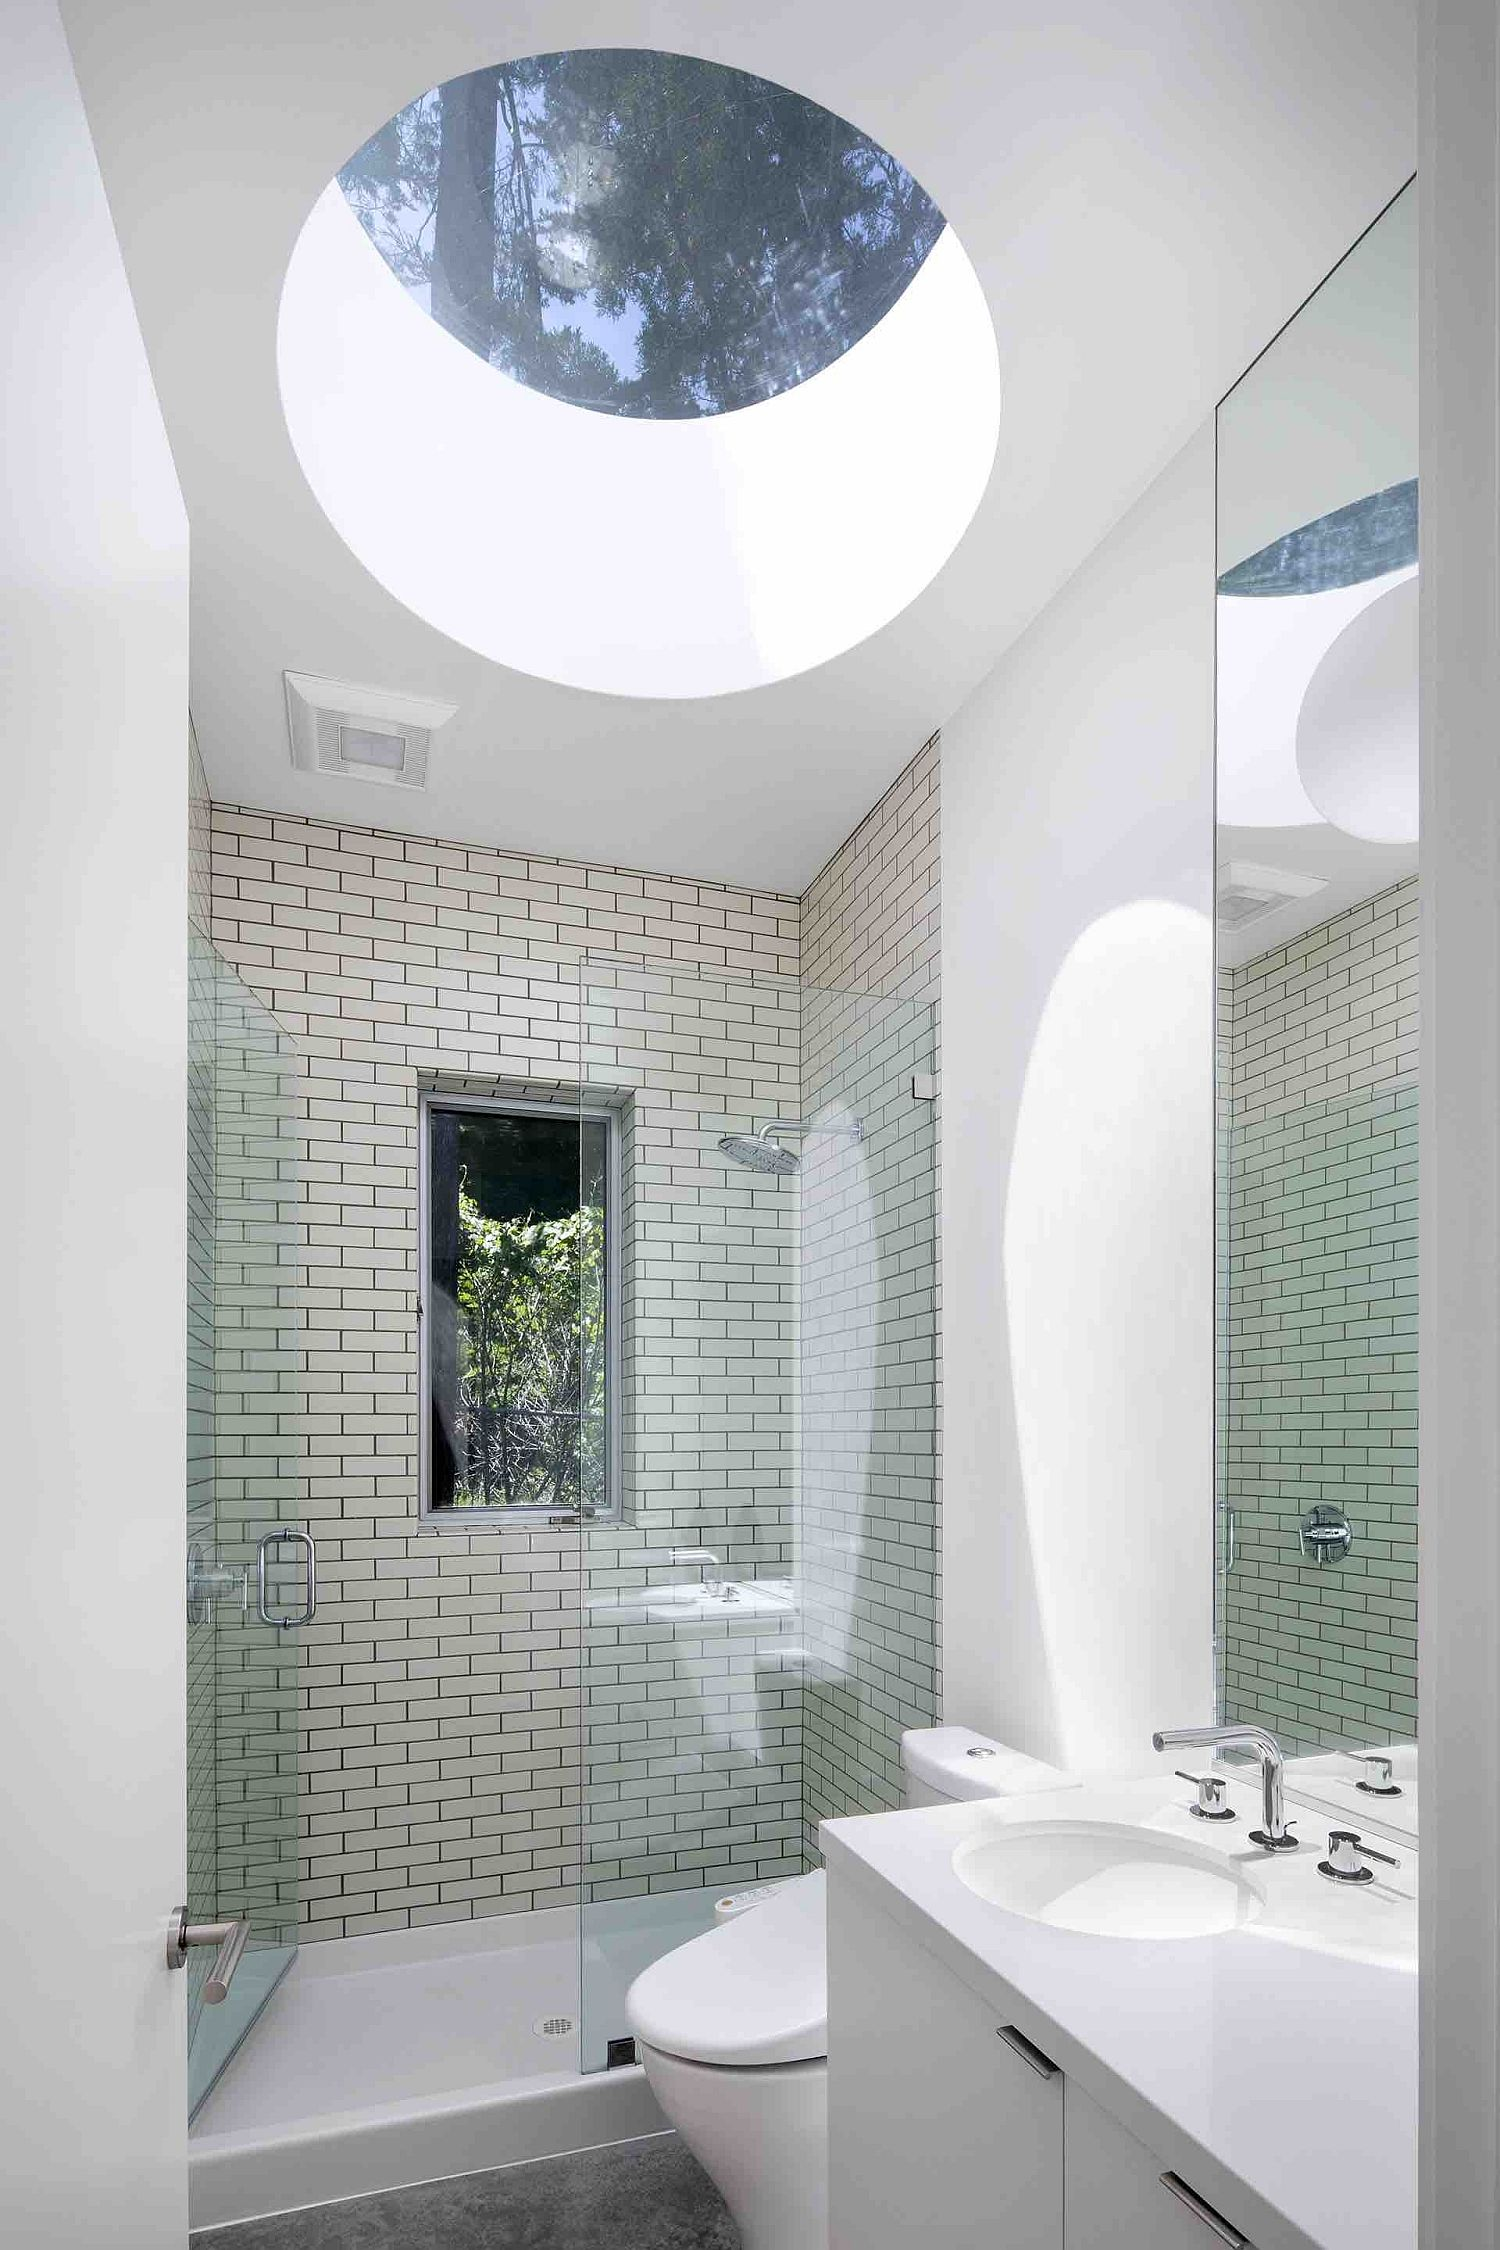 Spacious bathroom in white with skylight